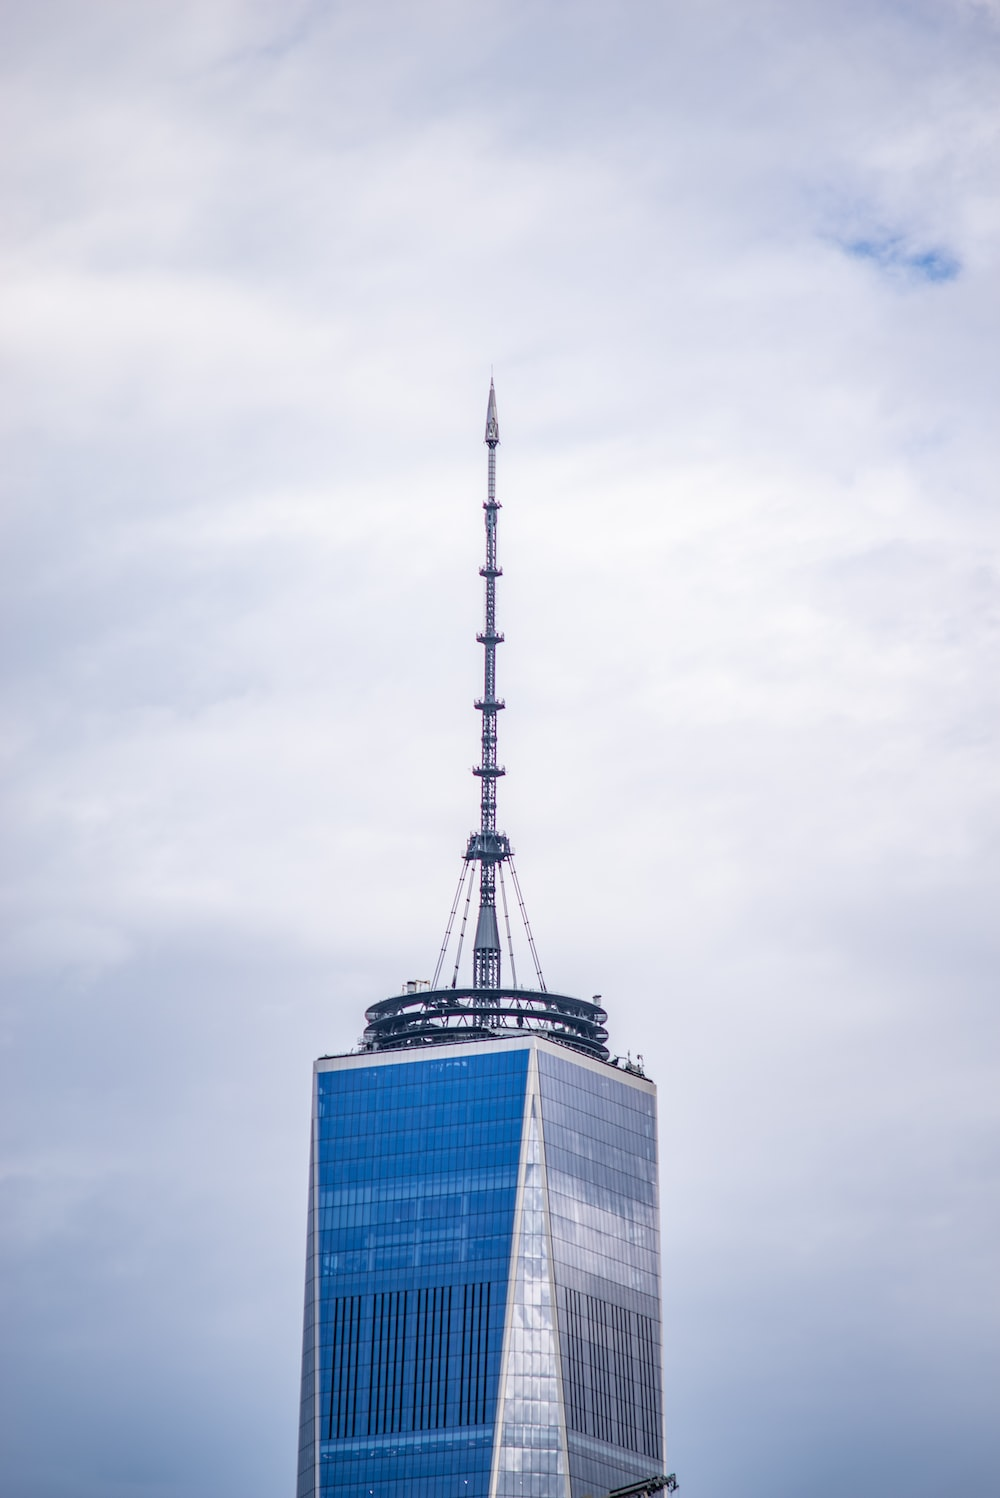 grey communication tower on top of blue and grey building